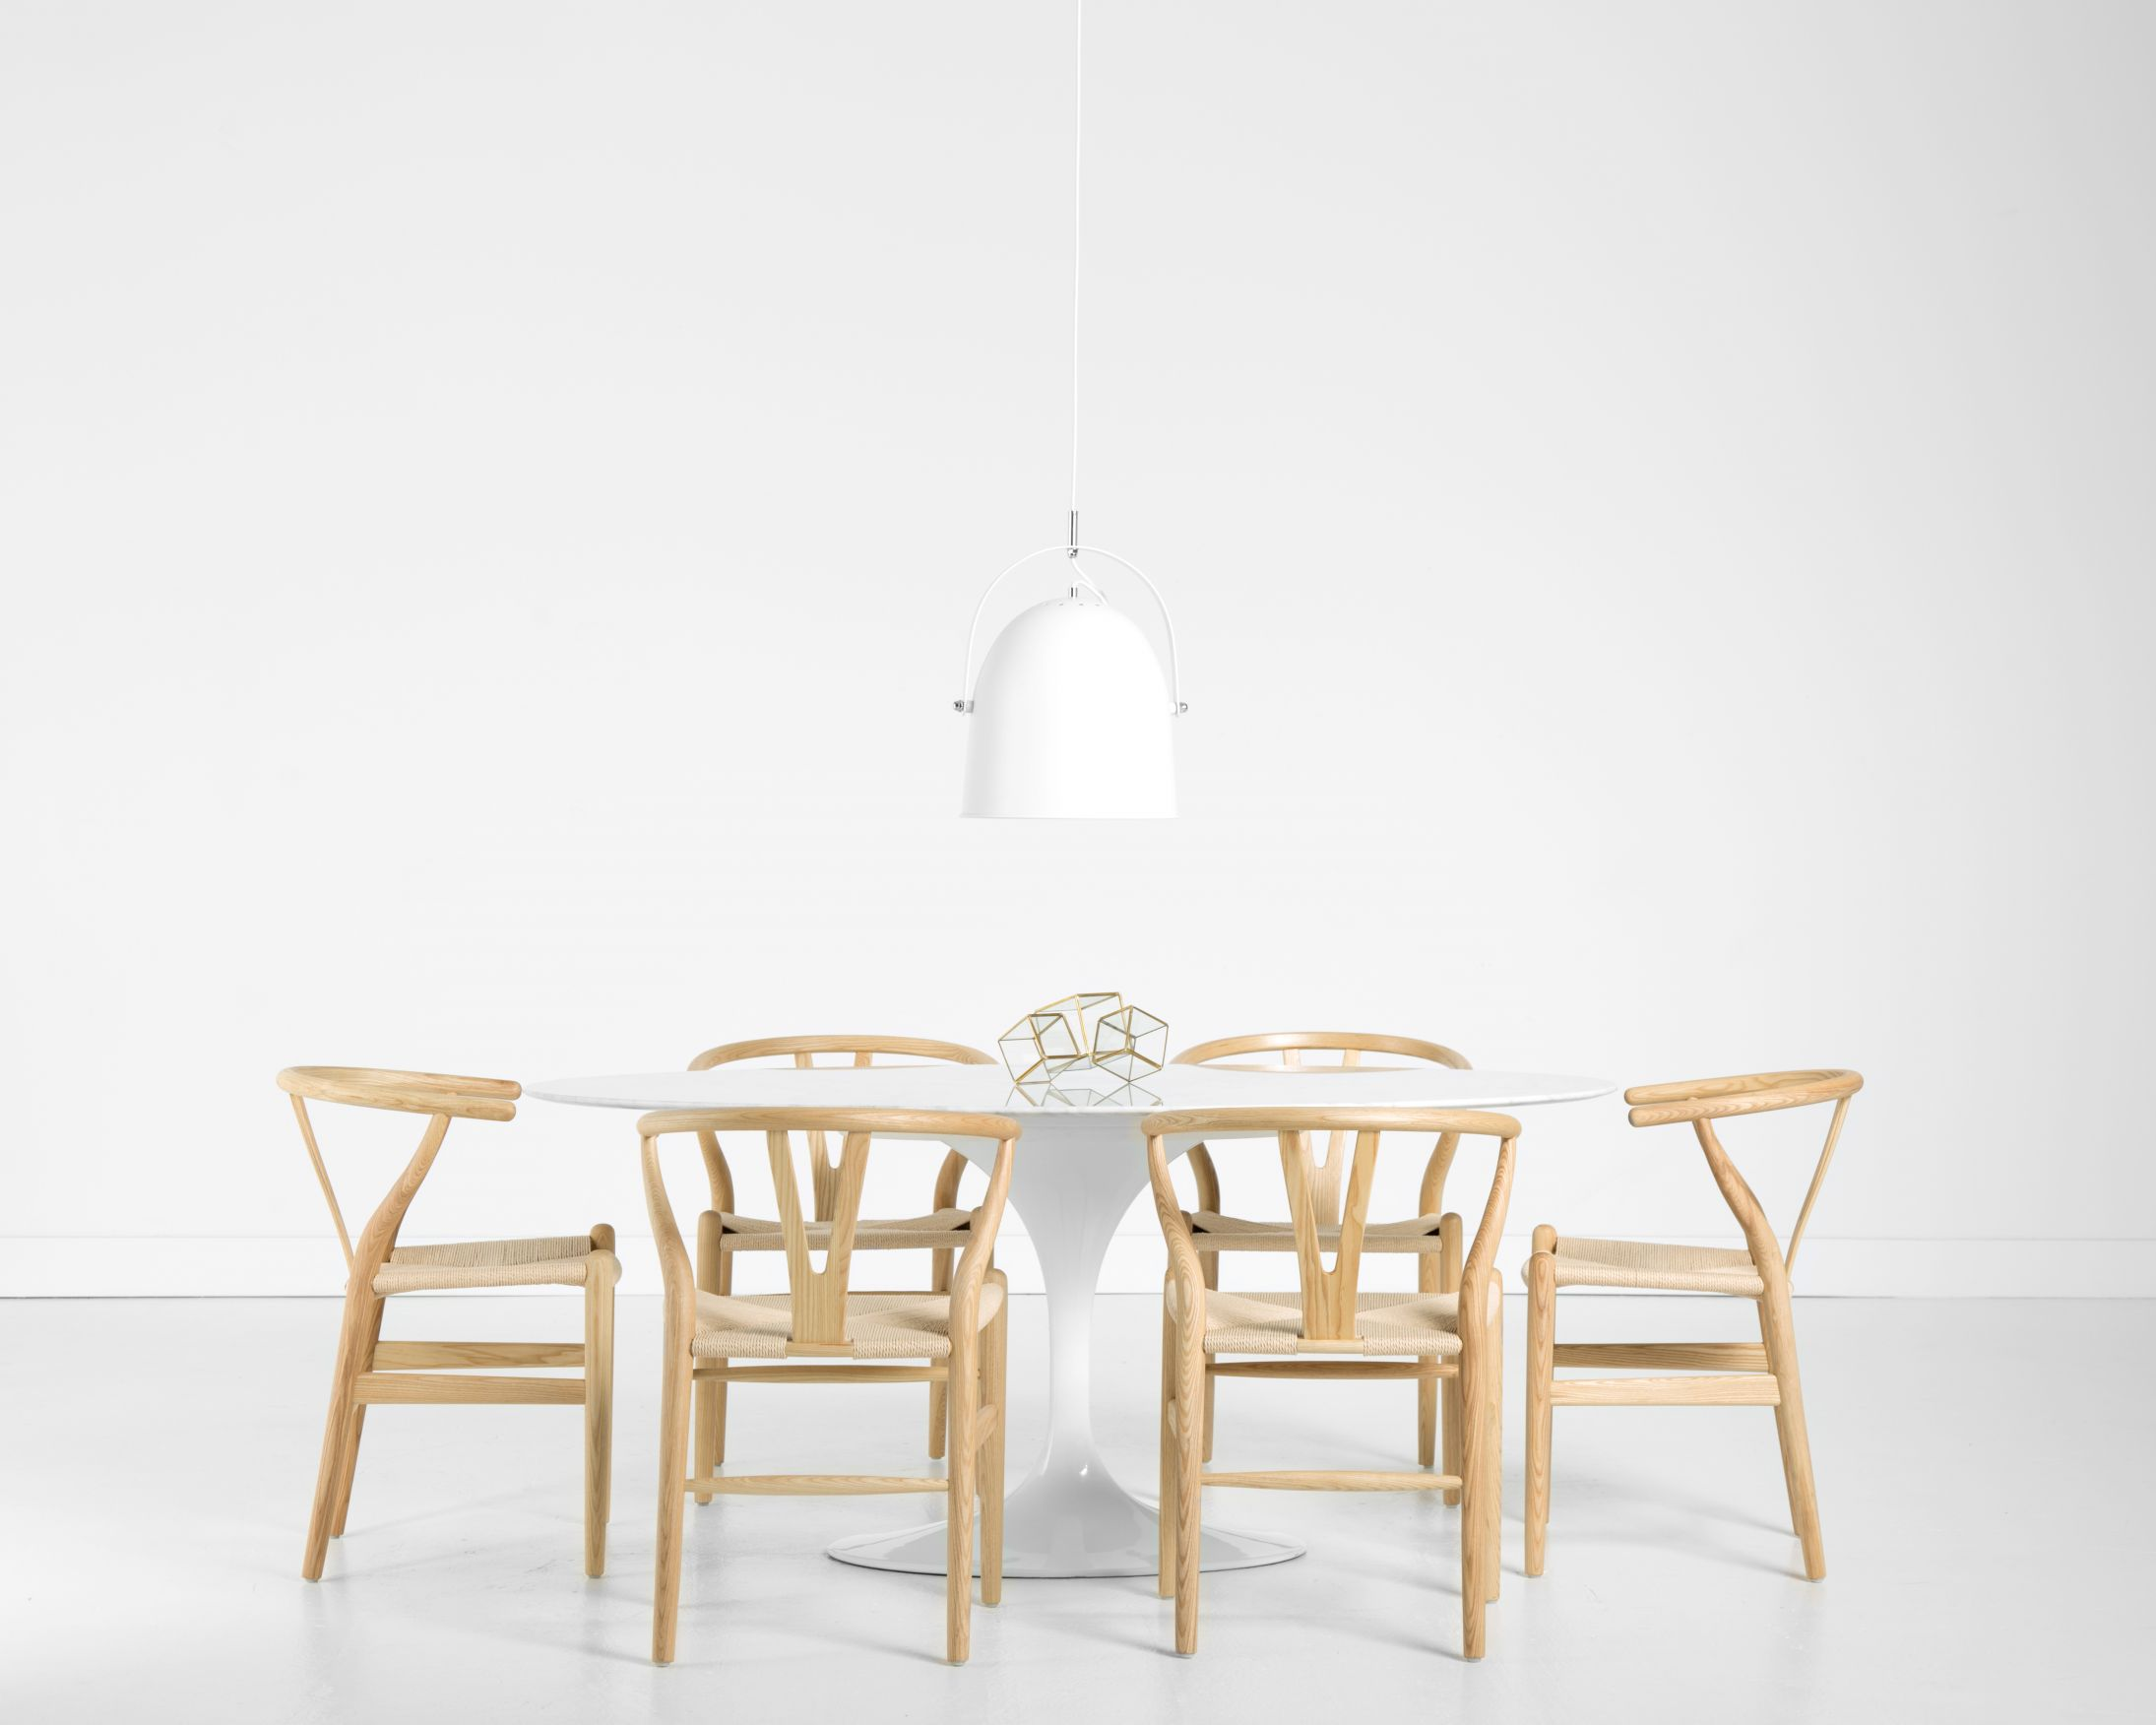 Design Tulip Table 67 oval tulip table carrara marble 7 piece dining set rove with wishbone chairs